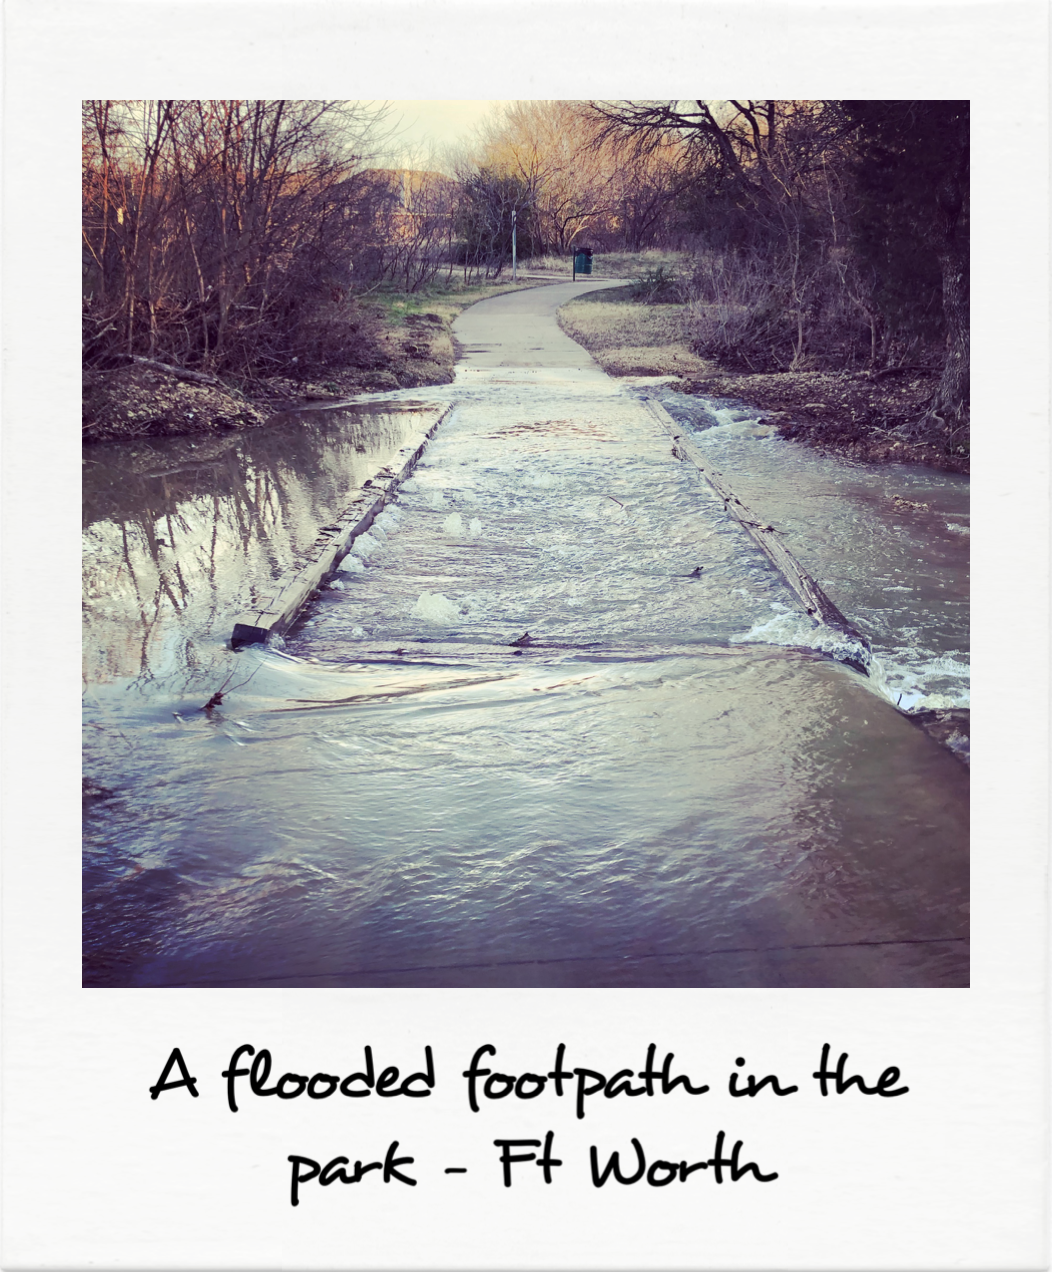 A flooded footpath in the park - Ft Worth